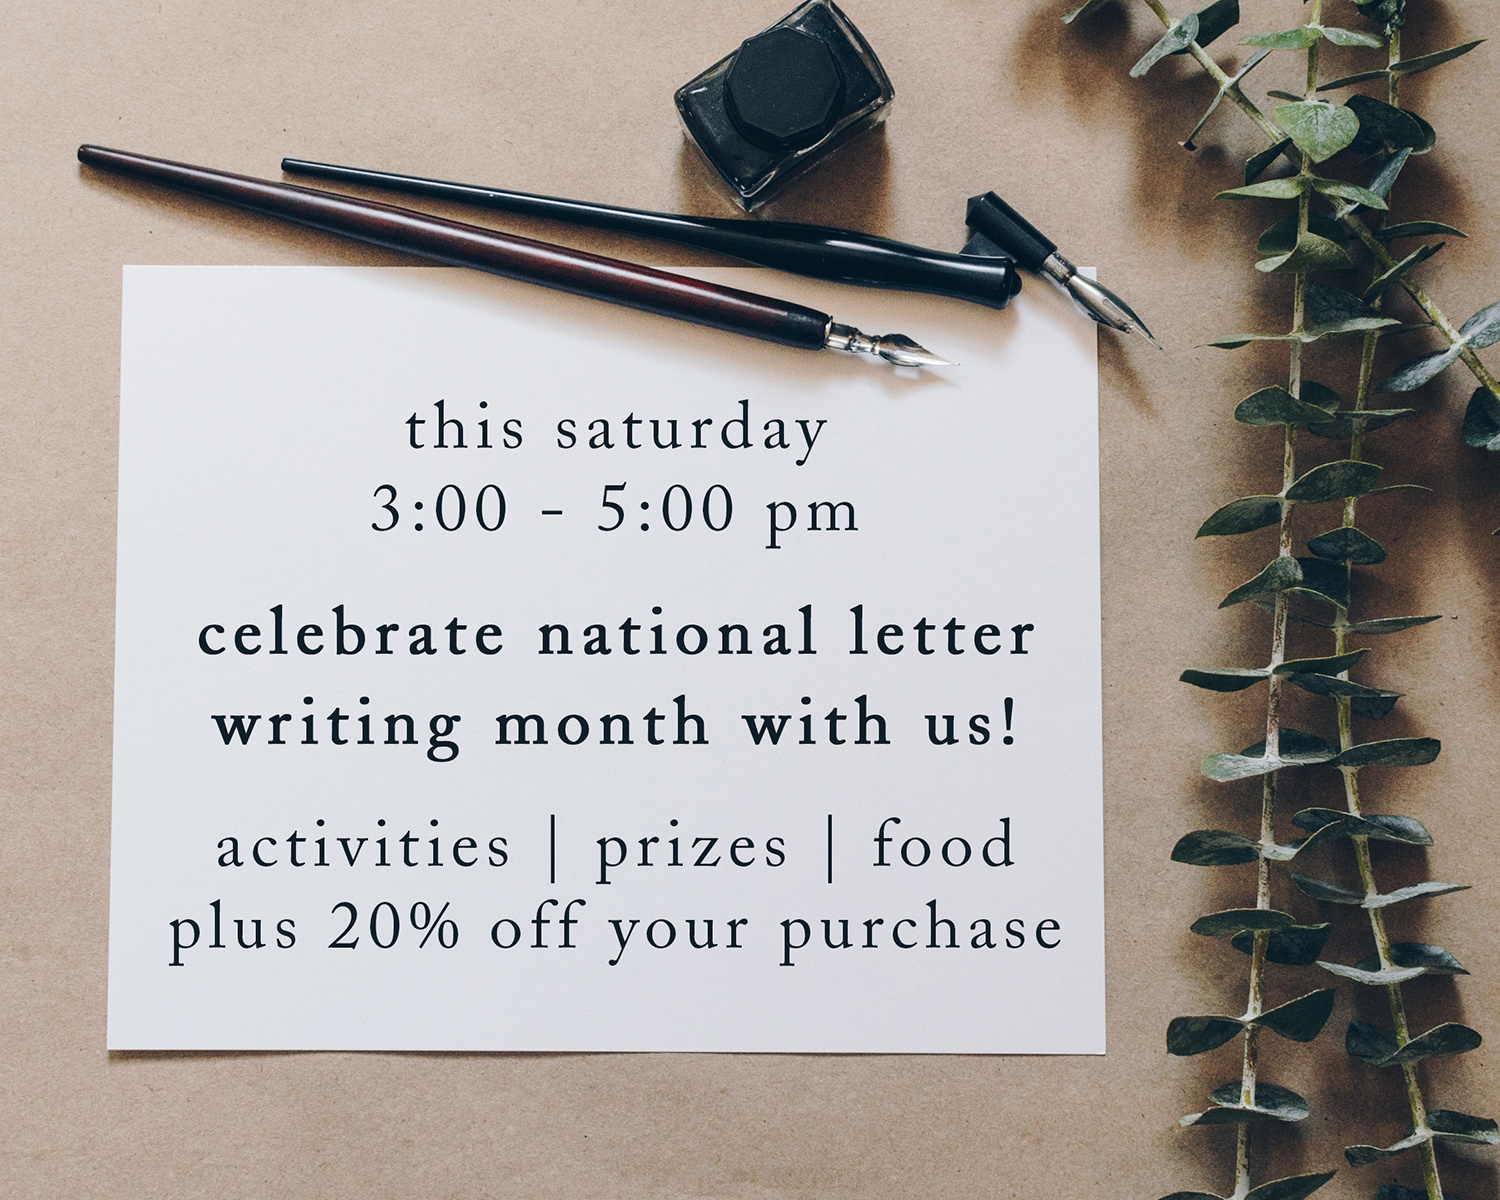 celebrate national letter writing month!